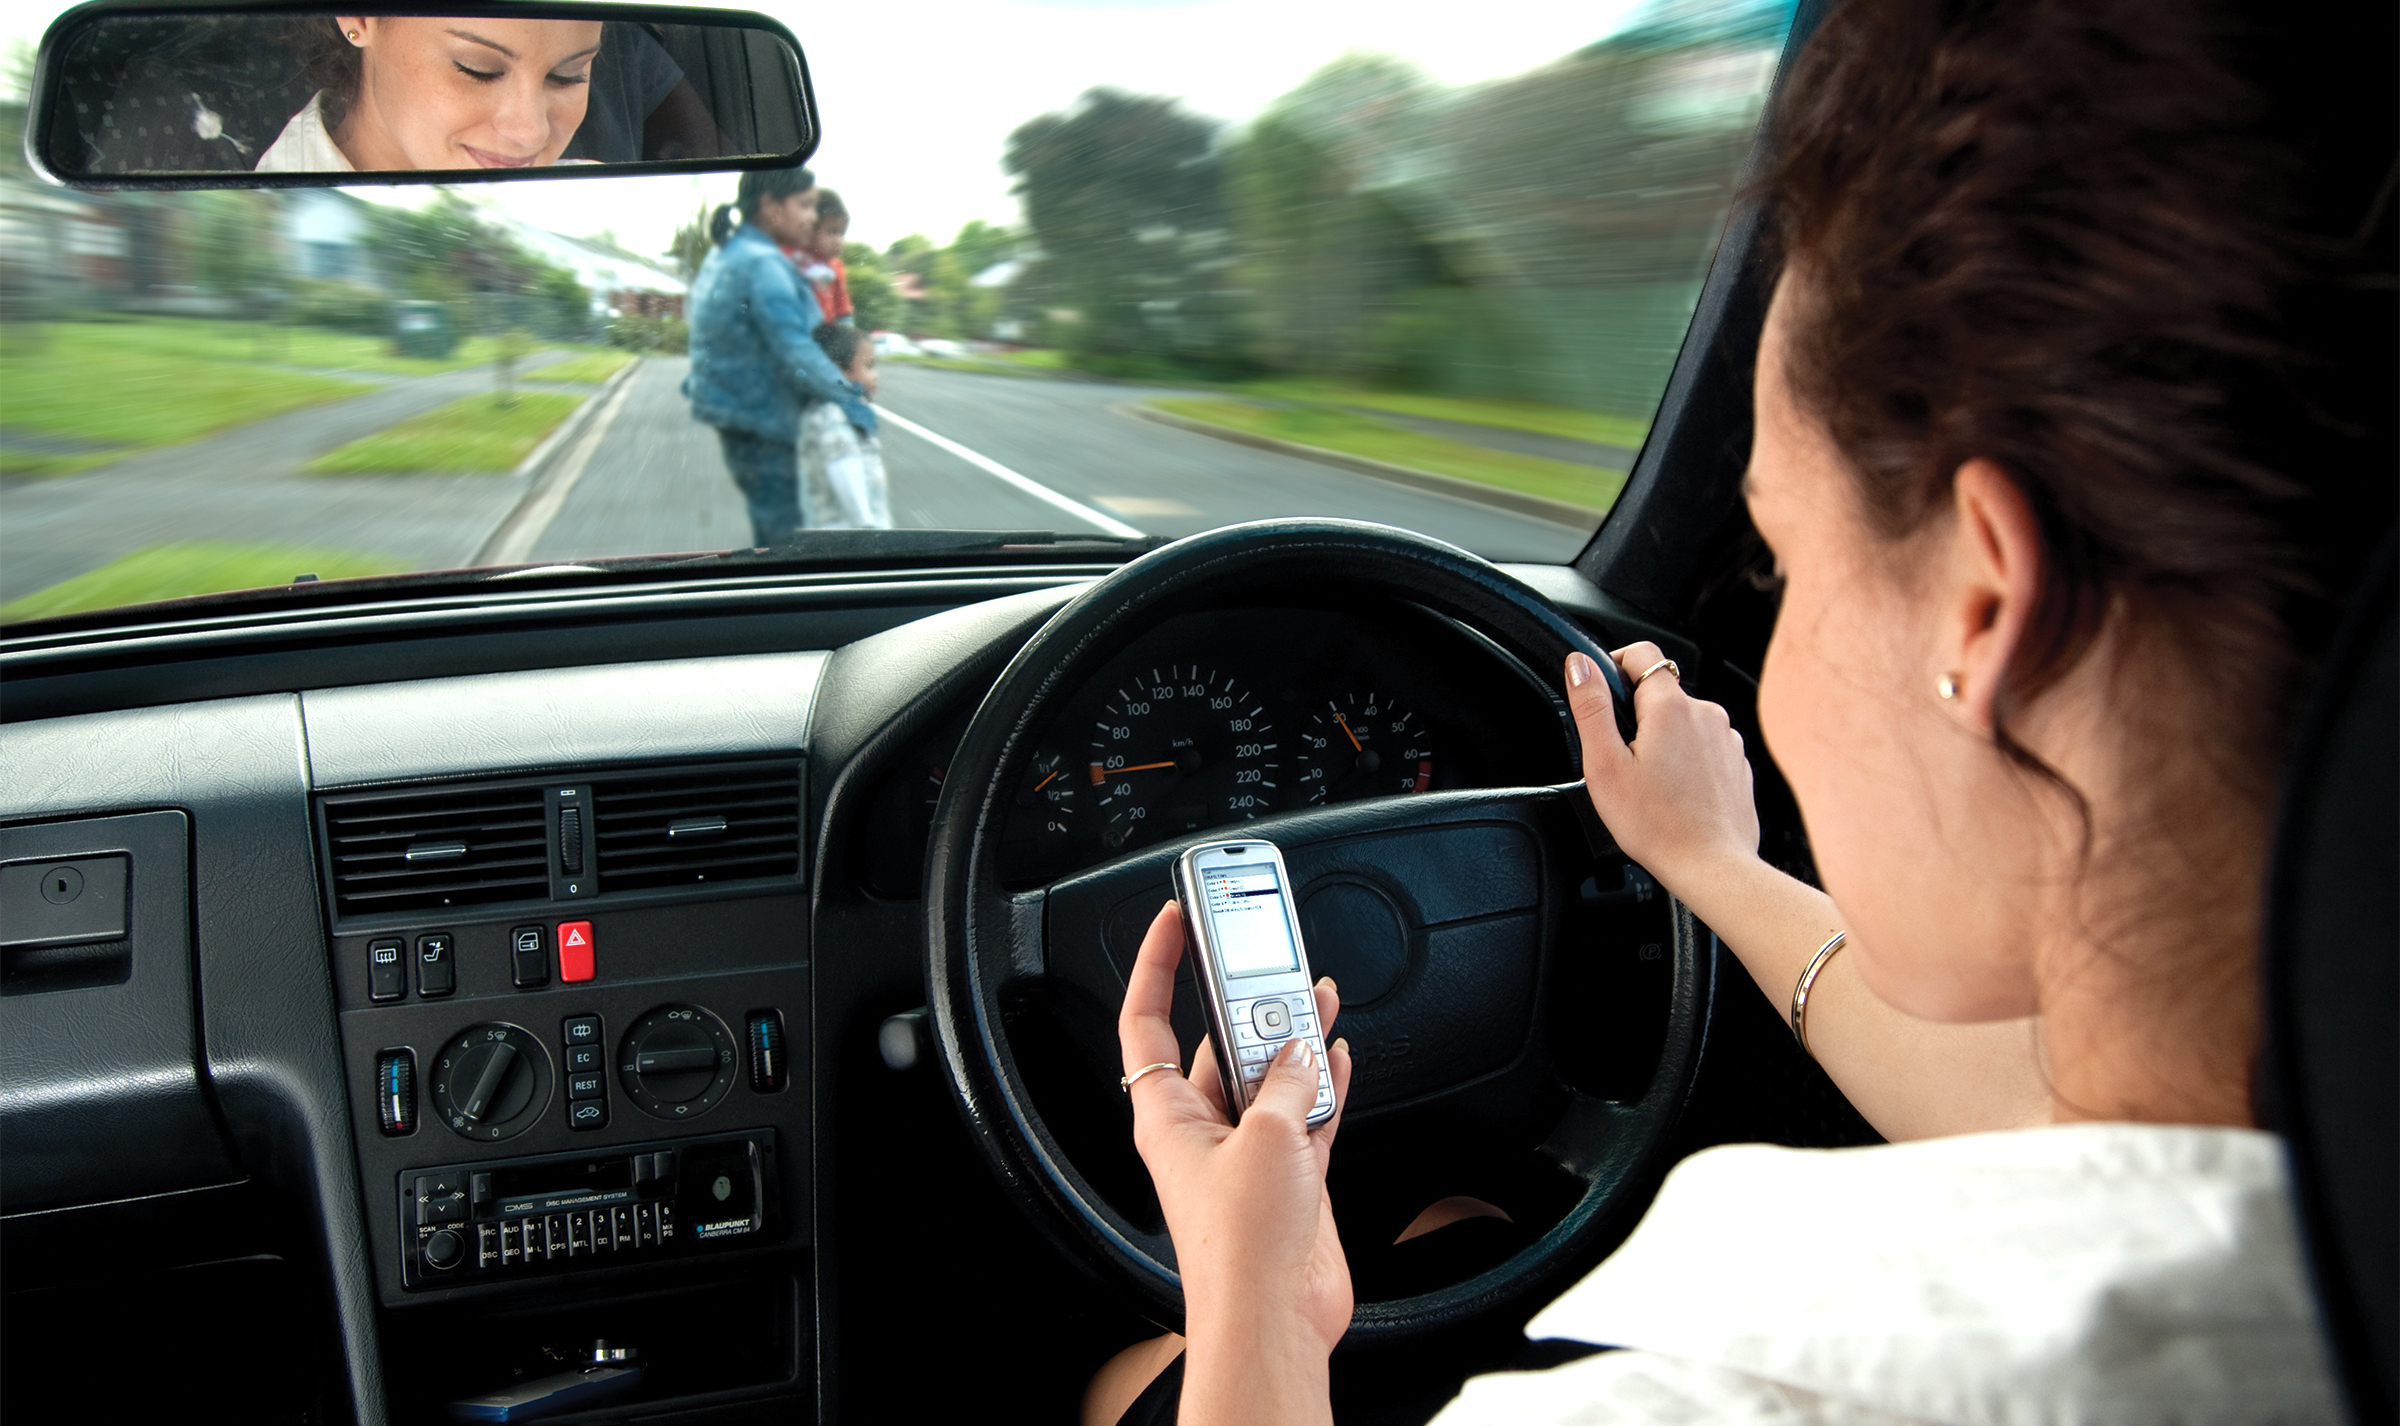 cell phone use while driving articles